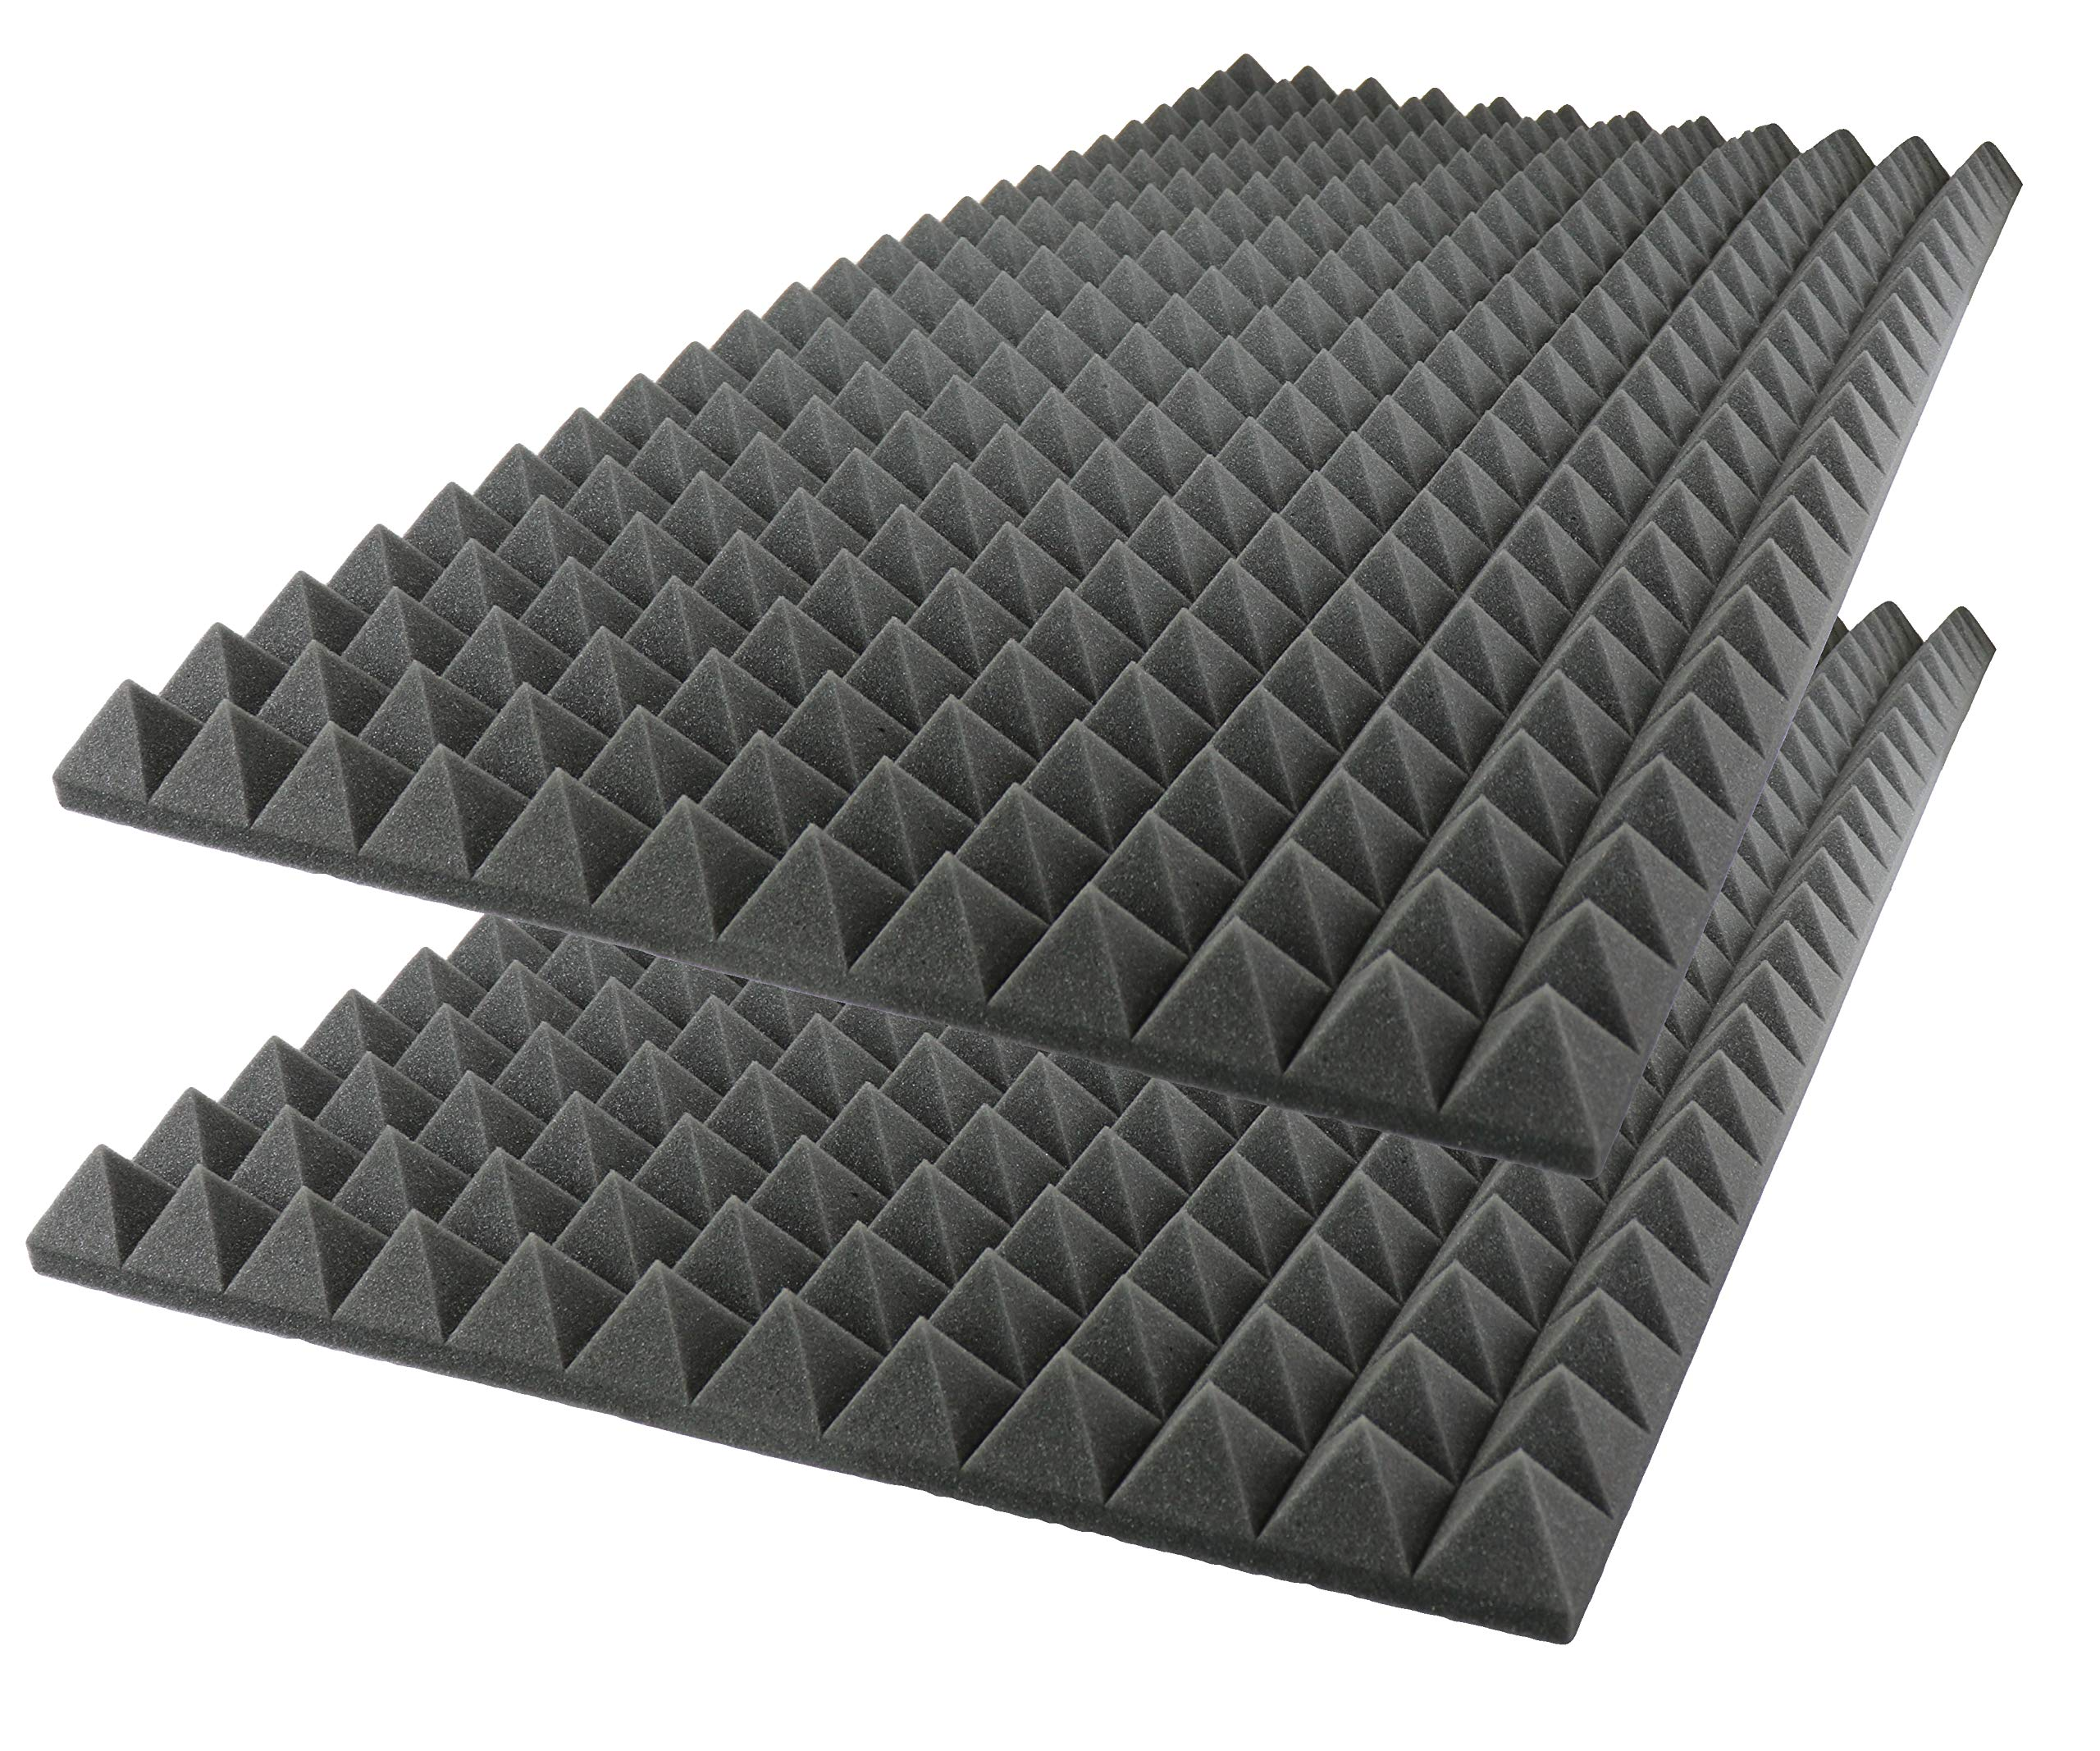 Foamily Acoustic Foam Sound Absorption Pyramid Studio Treatment Wall Panel, 48'' X 24'' X 2'' (2 Pack)